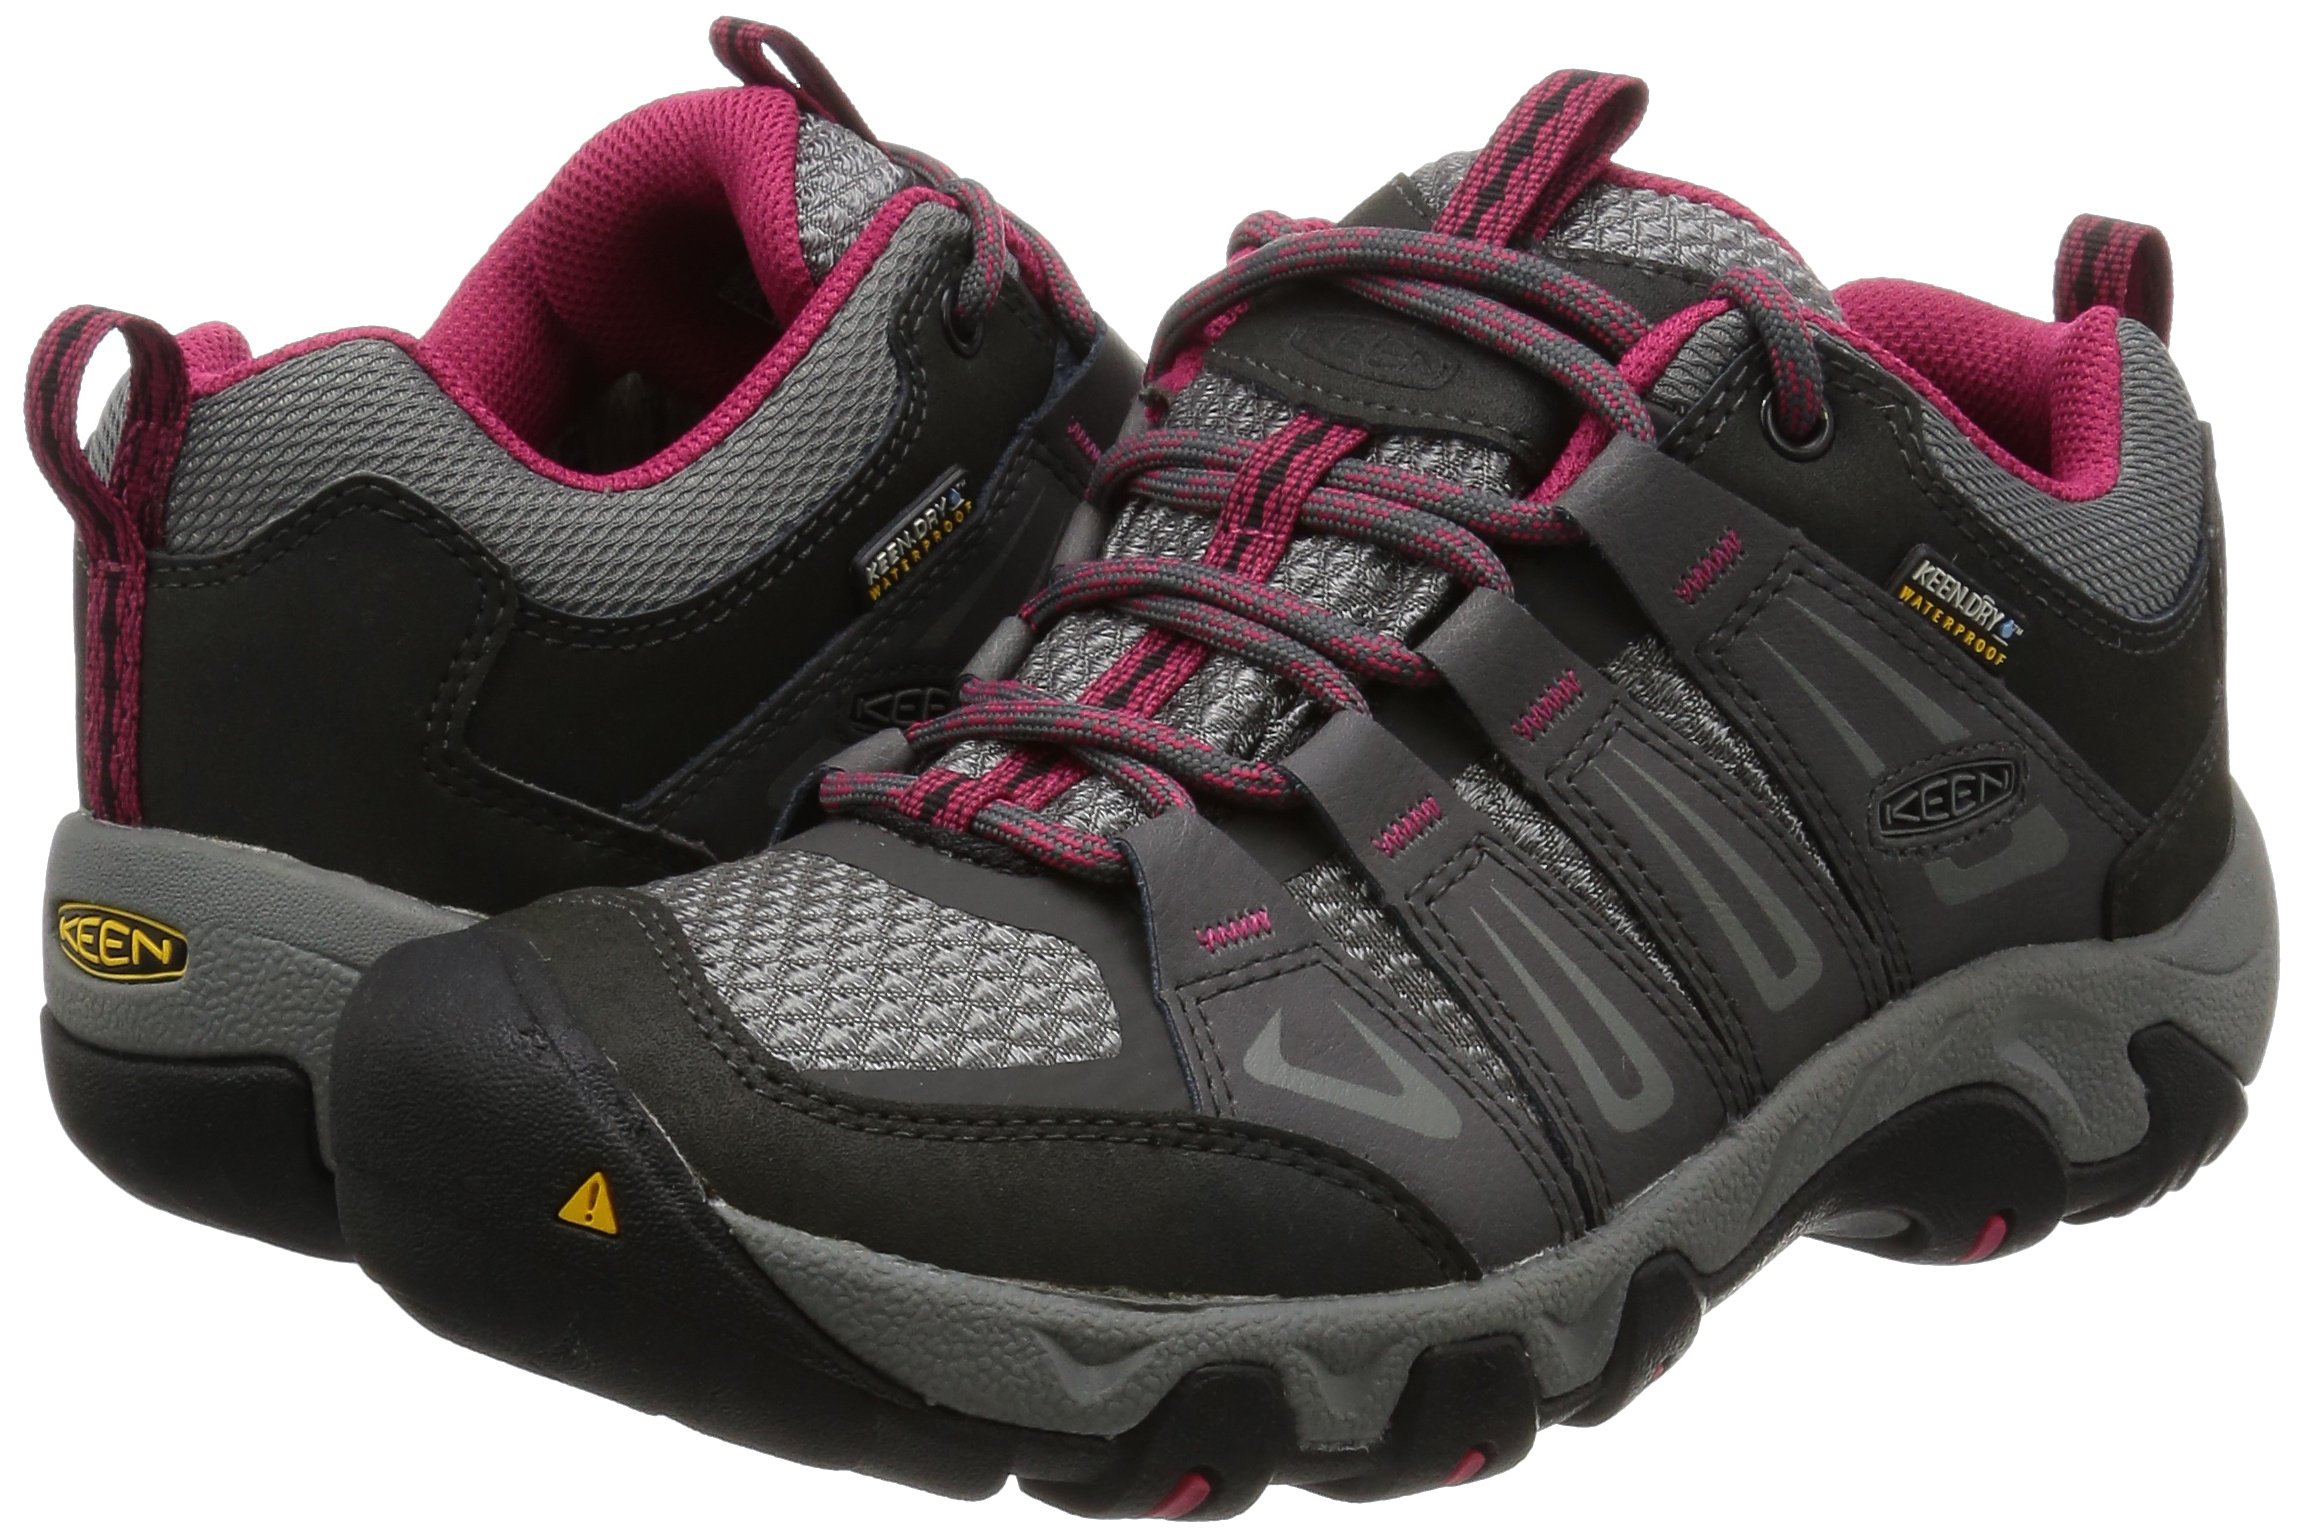 KEEN Women's Oakridge Waterproof Shoe, Magnet/Rose, 9 M US by KEEN (Image #6)